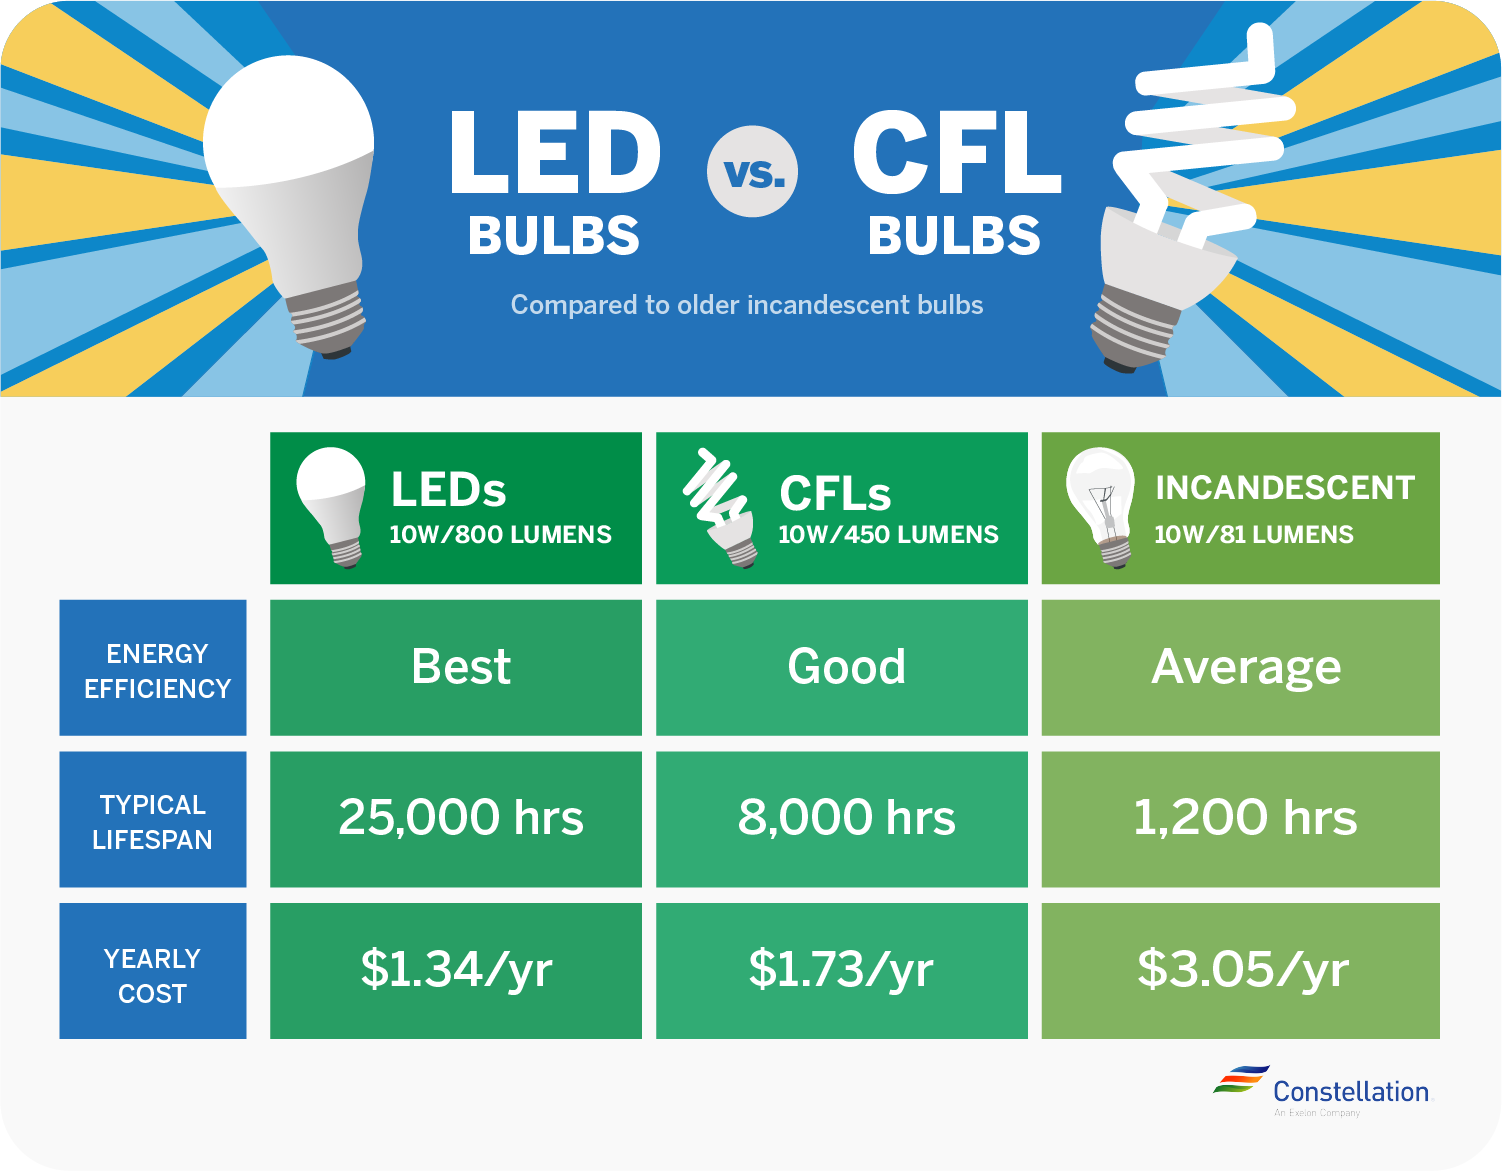 CFL vs. LED bulbs